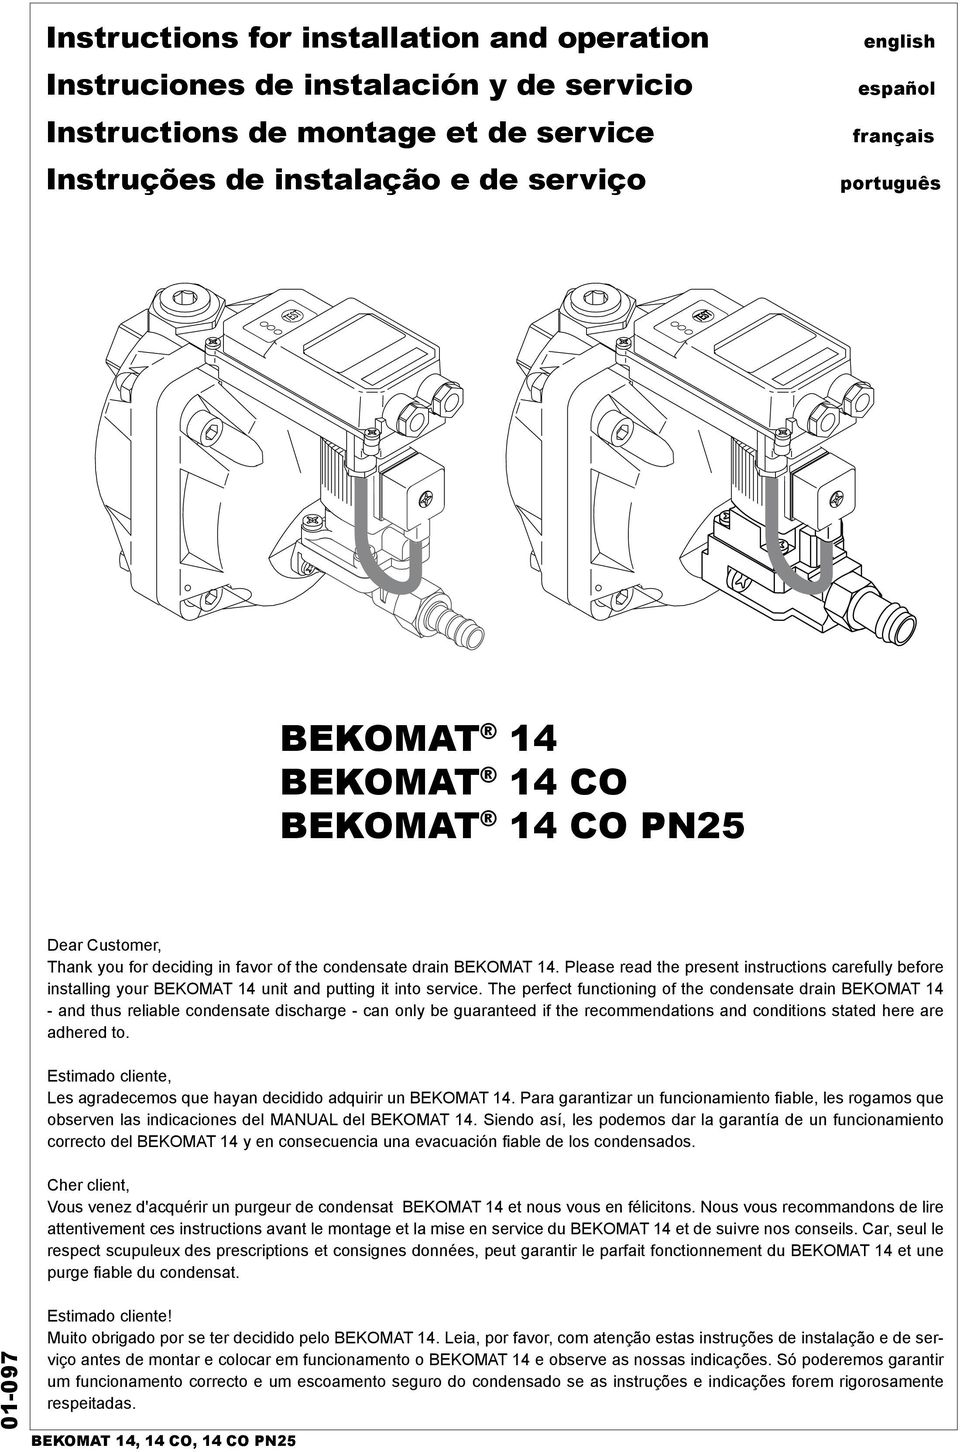 Please read the present instructions carefully before installing your BEKOMAT 14 unit and putting it into service.